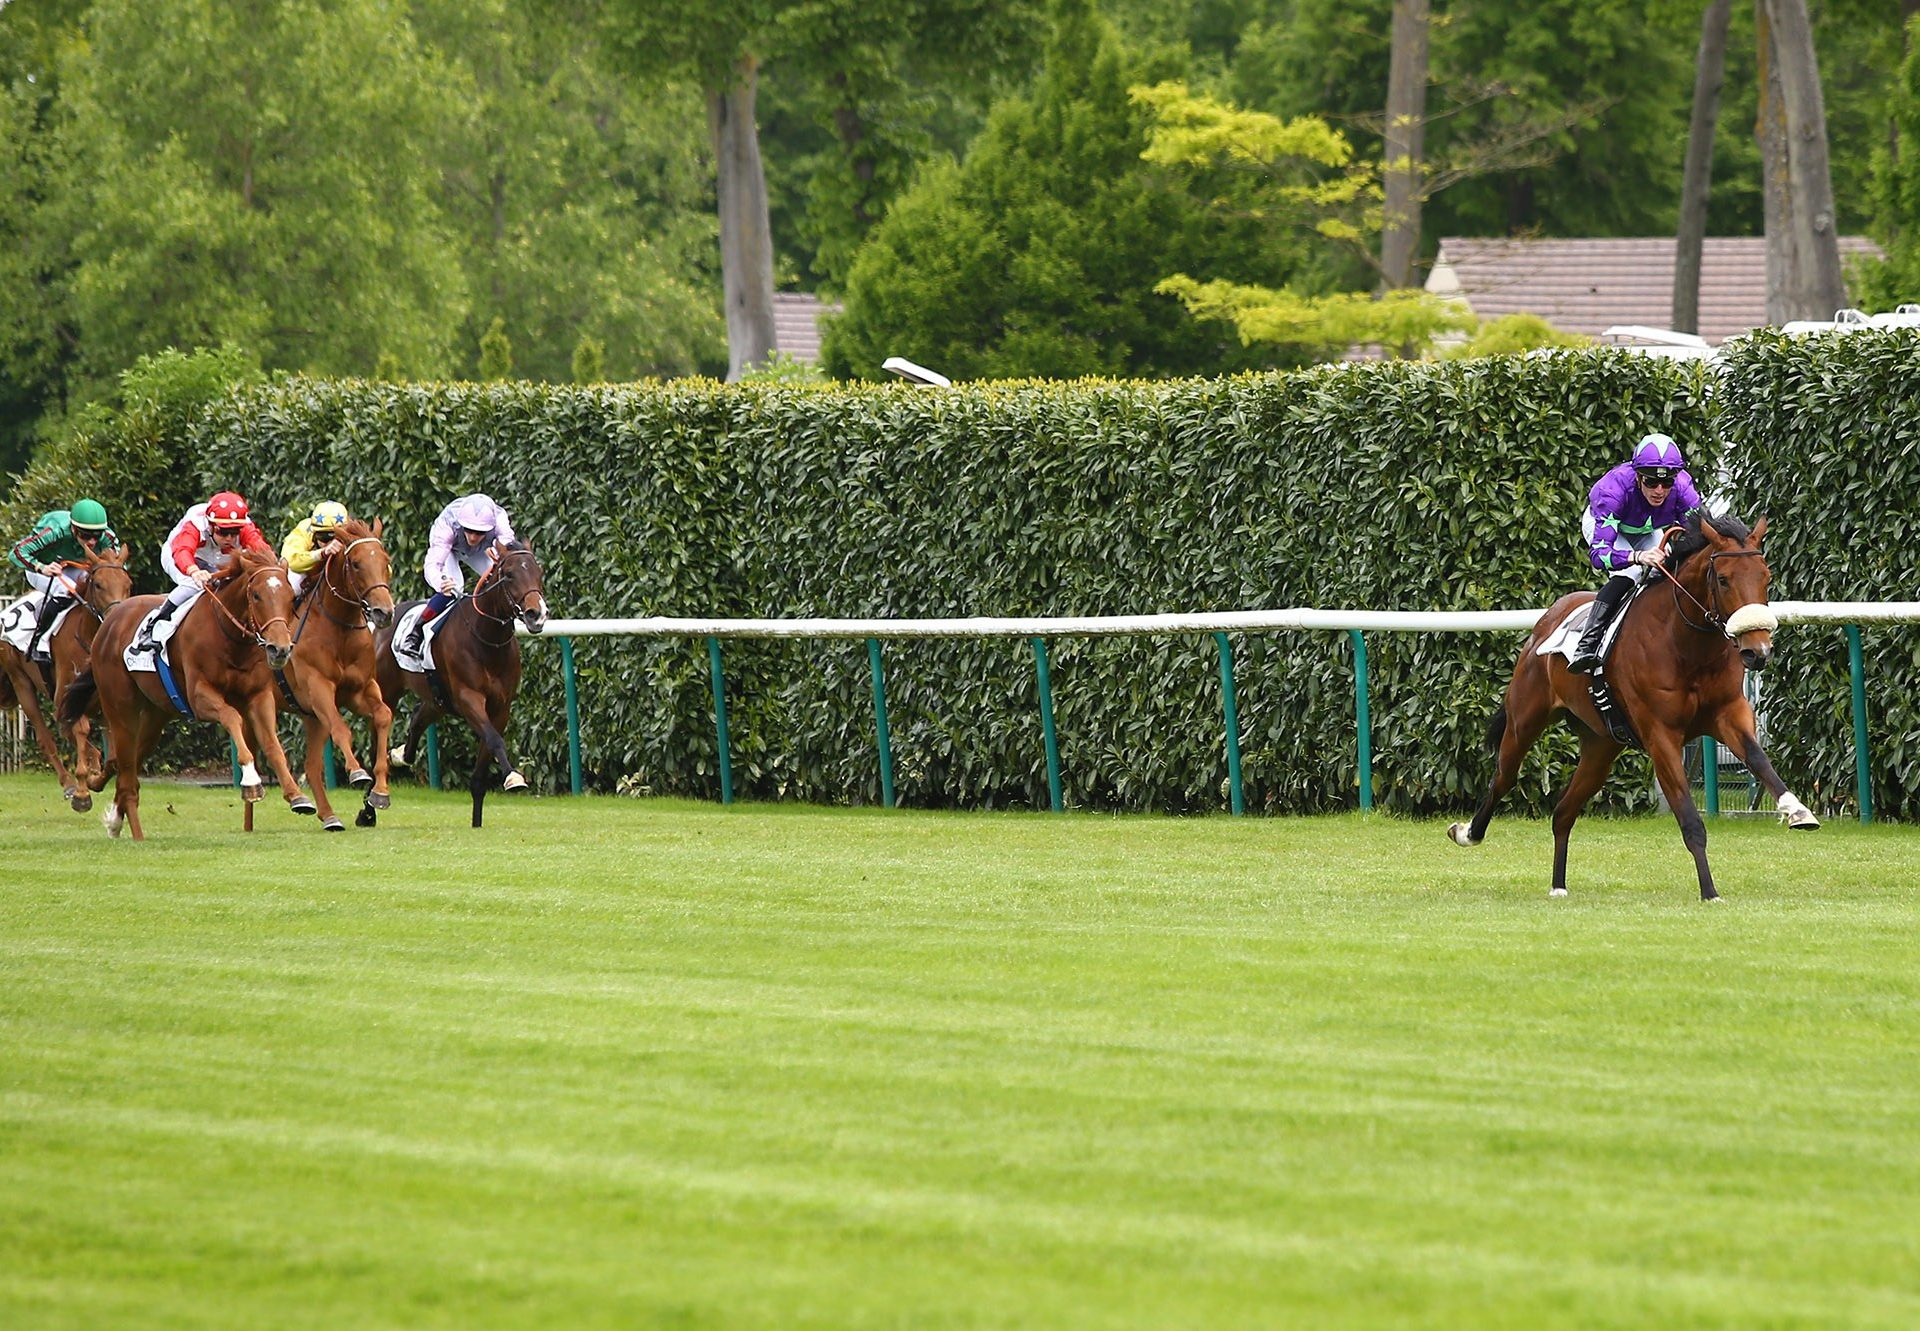 Hurricane Ivor (Ivawood) winning his maiden at Chantilly